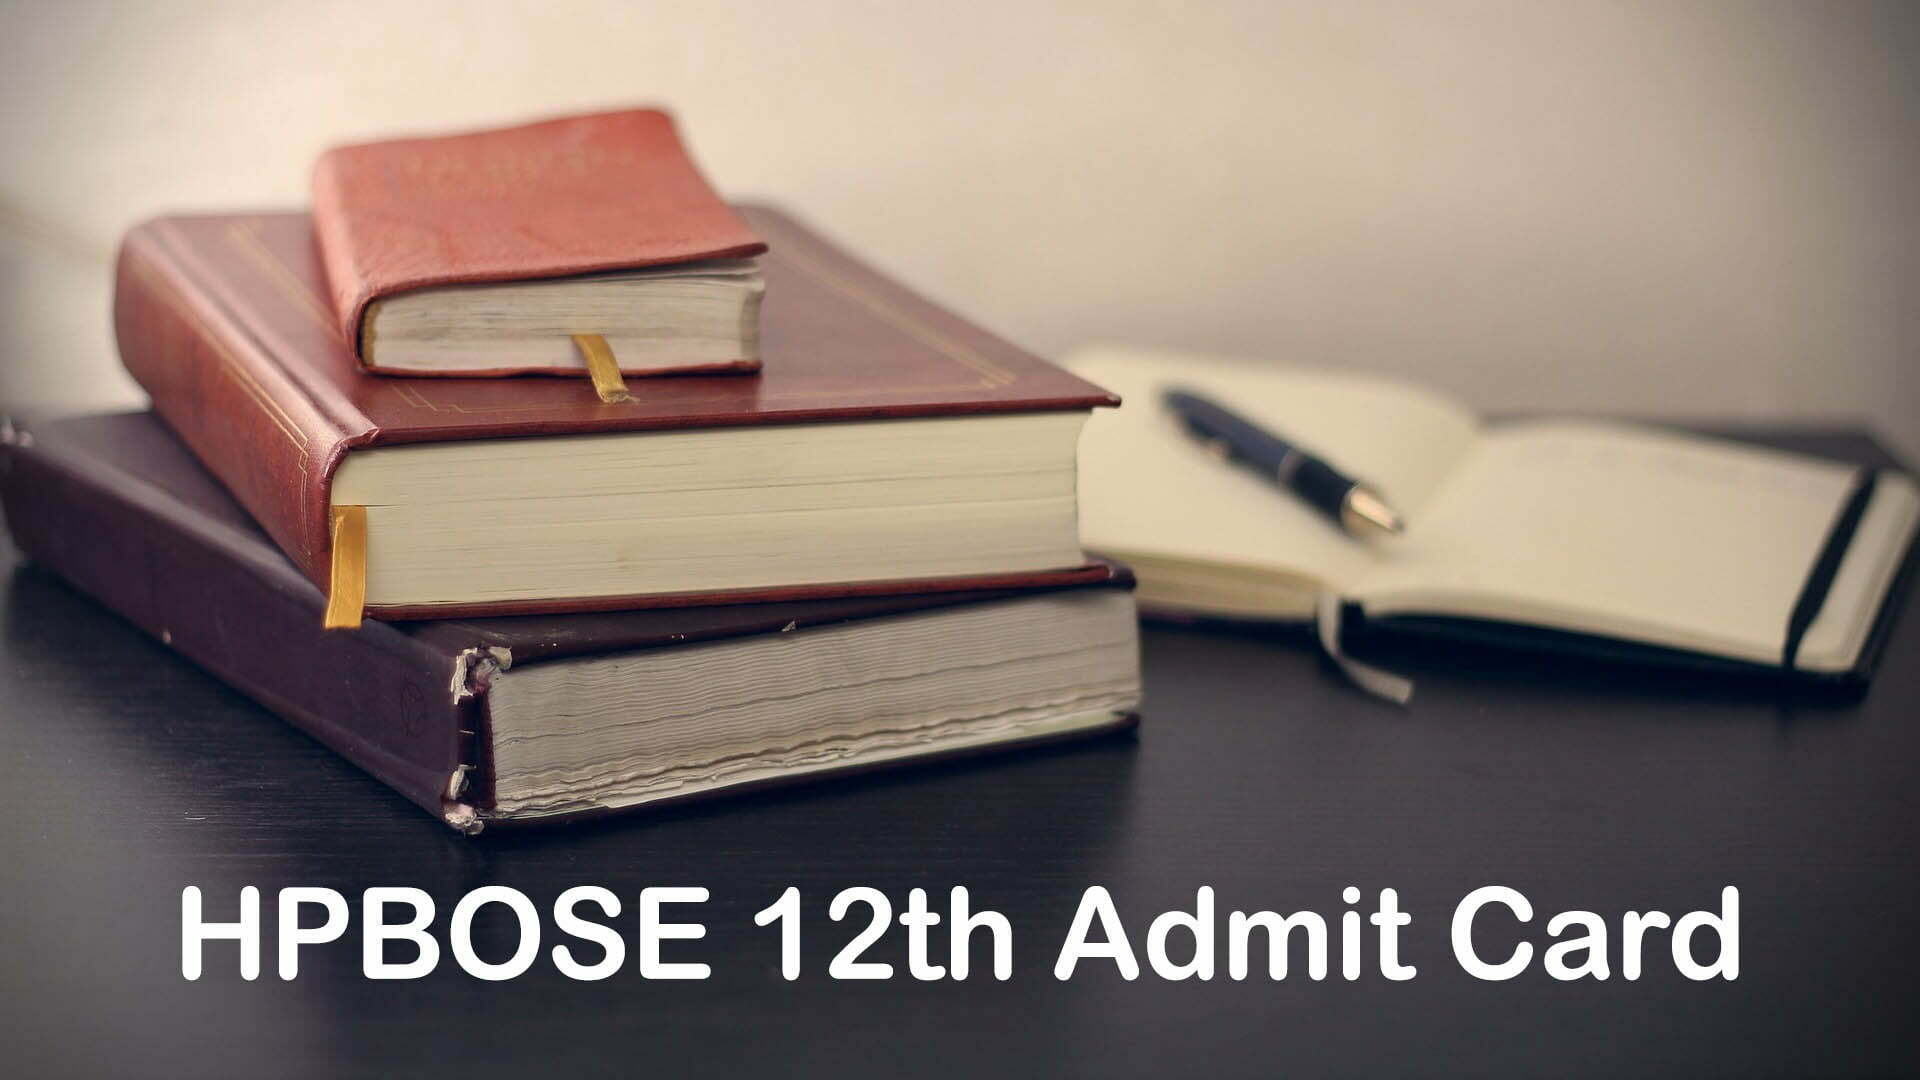 HPBOSE 12th Admit Card 2020 : Download HP Board 12th Admit Card 2020